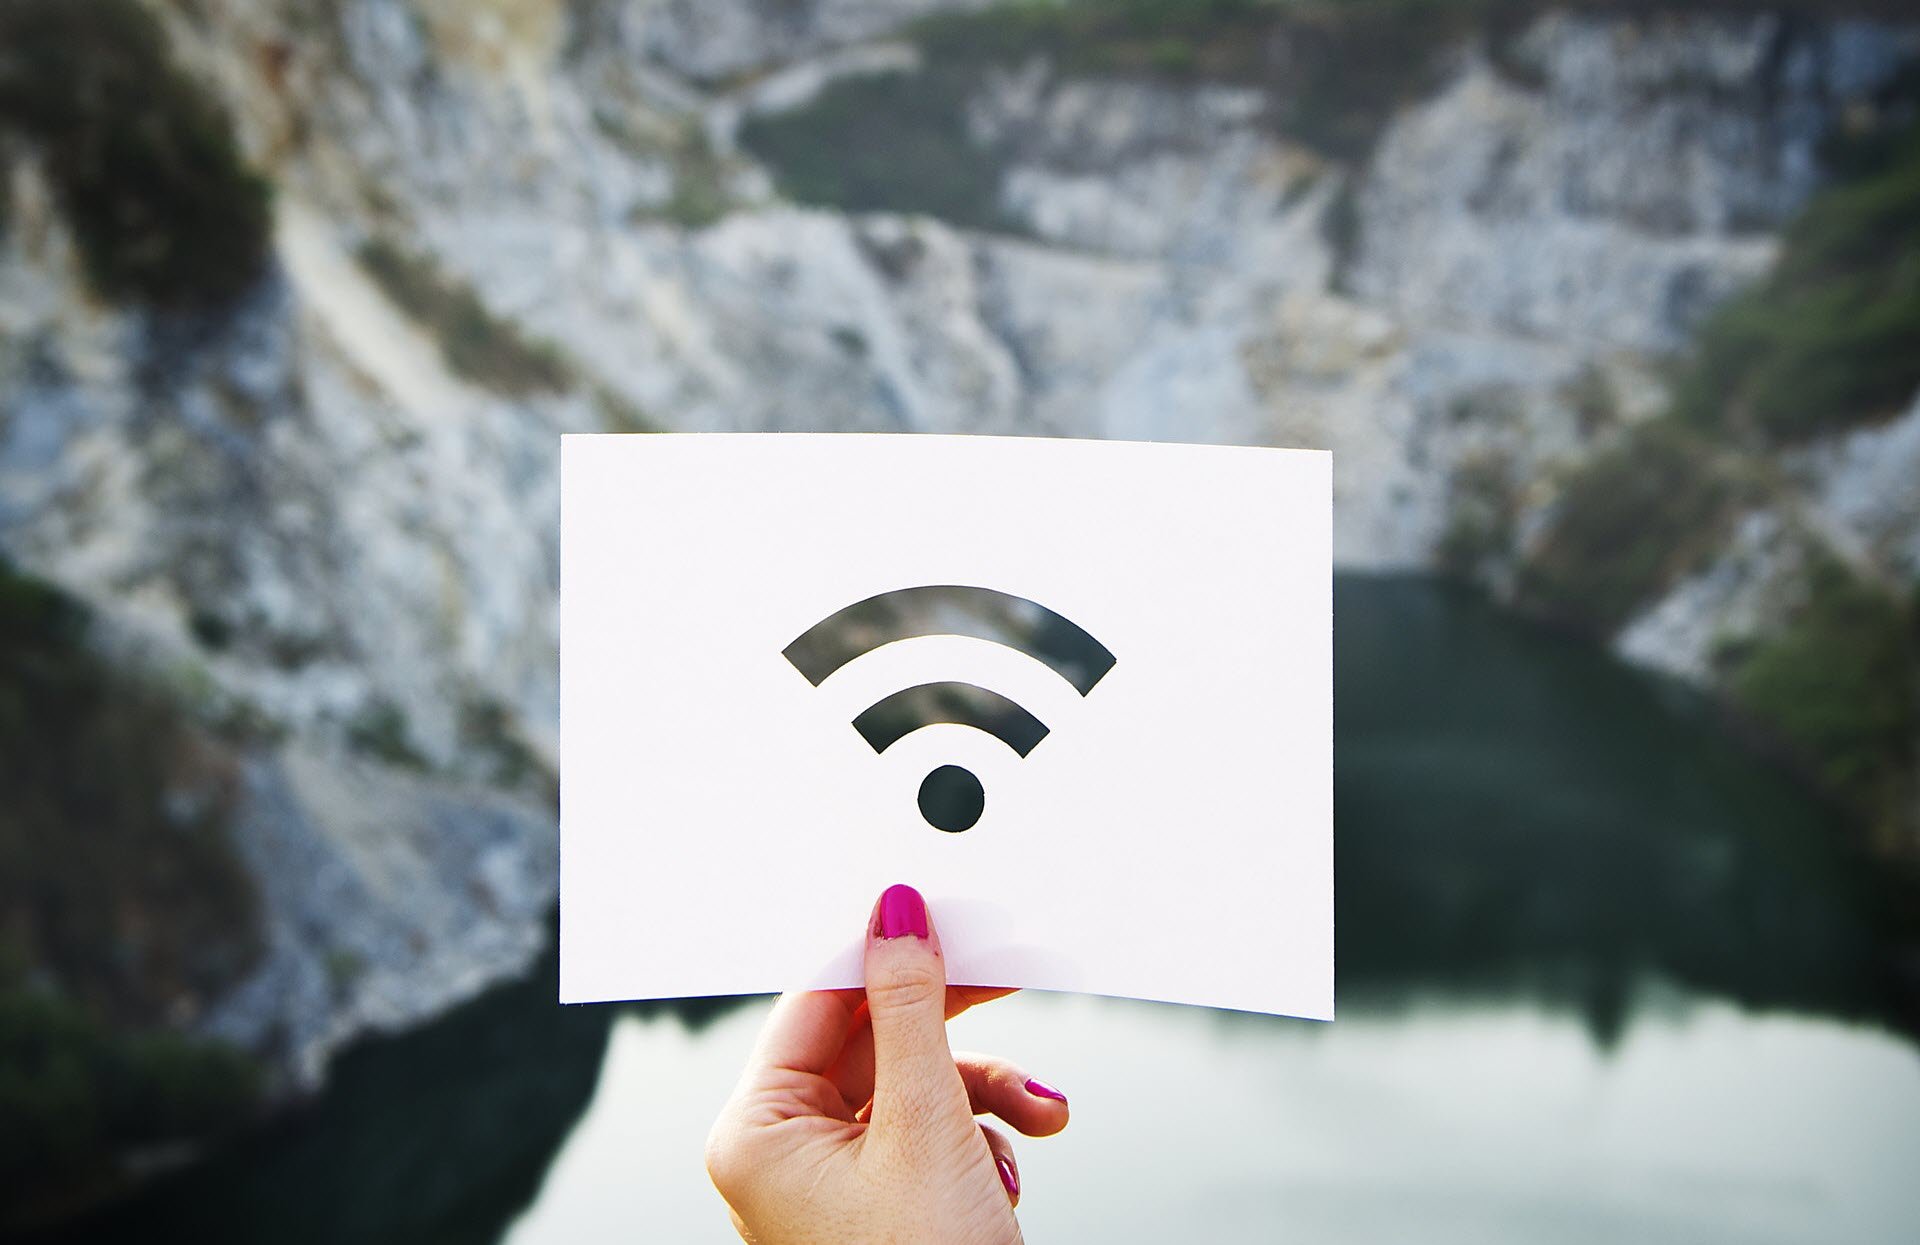 Is your WiFi secure? 5 tips to keep your network safe and sound